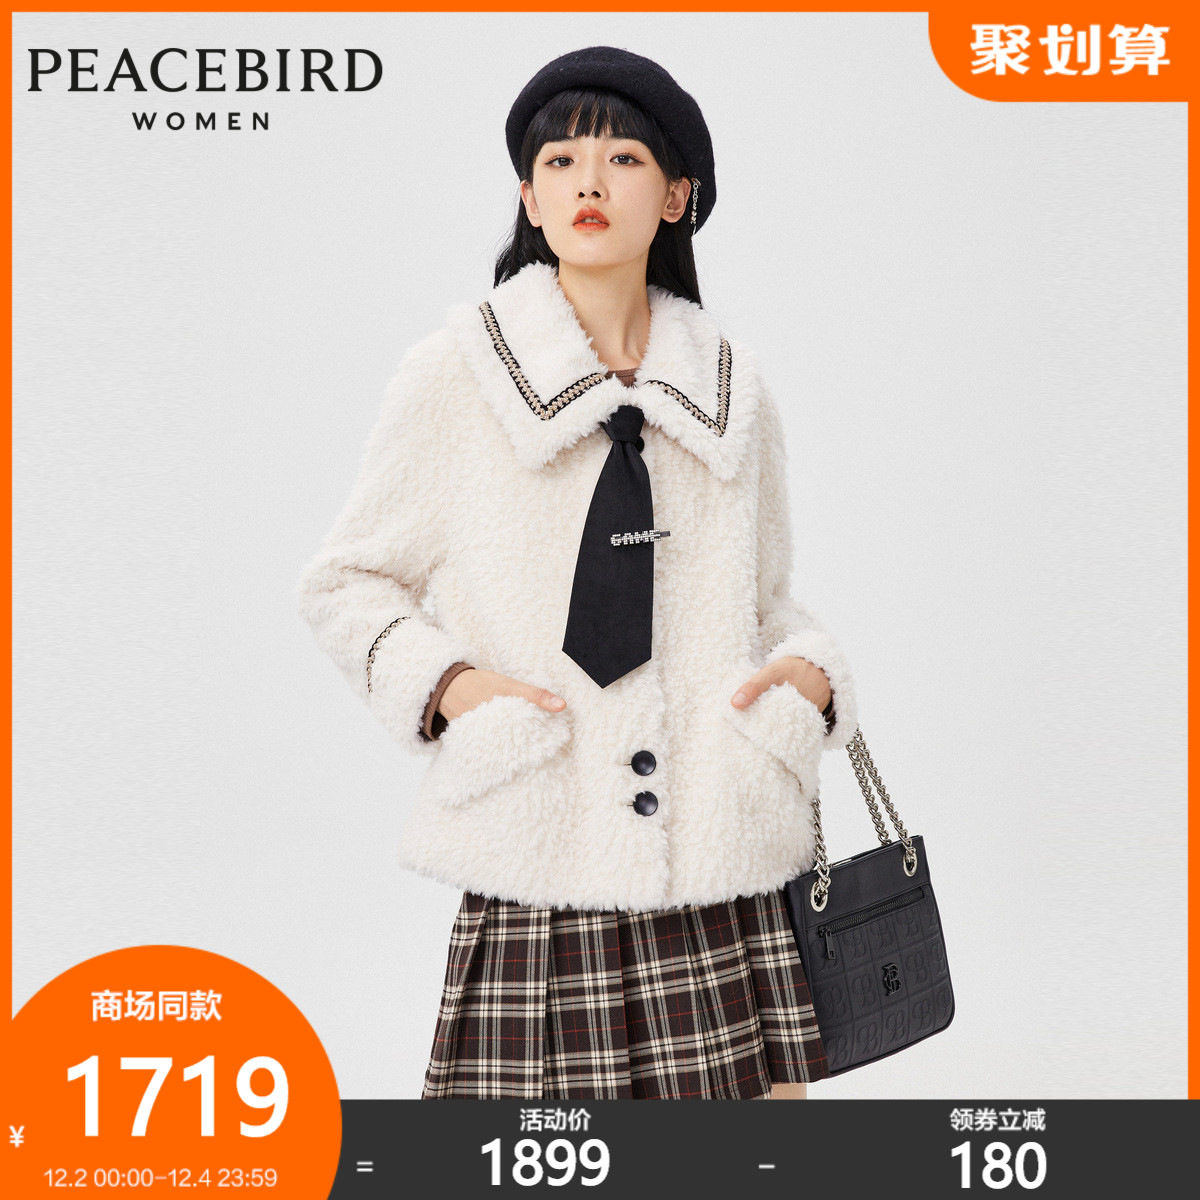 The same style Peacebird 2020 autumn and winter new female lapel tie wool coat A5ADA4162